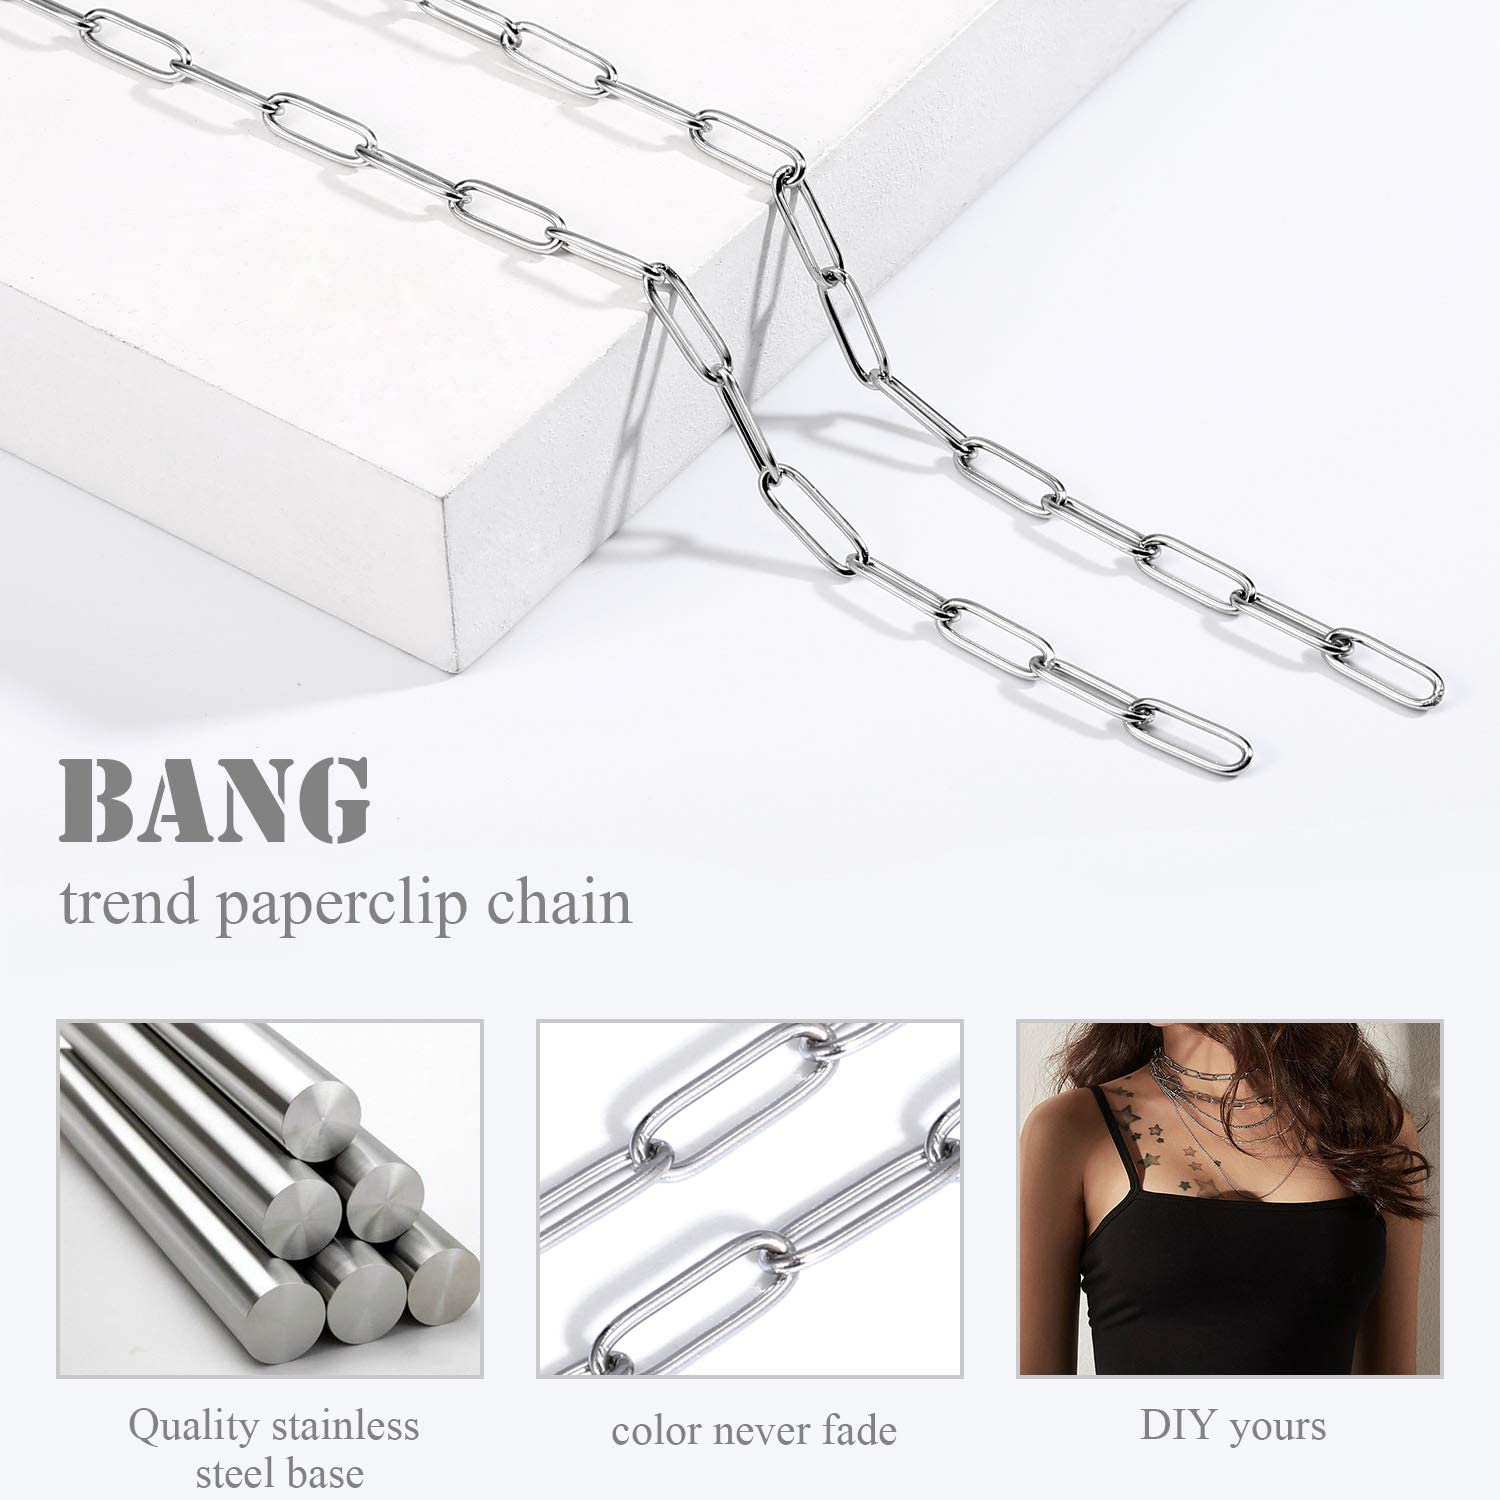 ALEXCRAFT 24 feet Chains for Jewellery Making Stainless Steel Papaerclip Link Chain Bulk for DIY Necklace